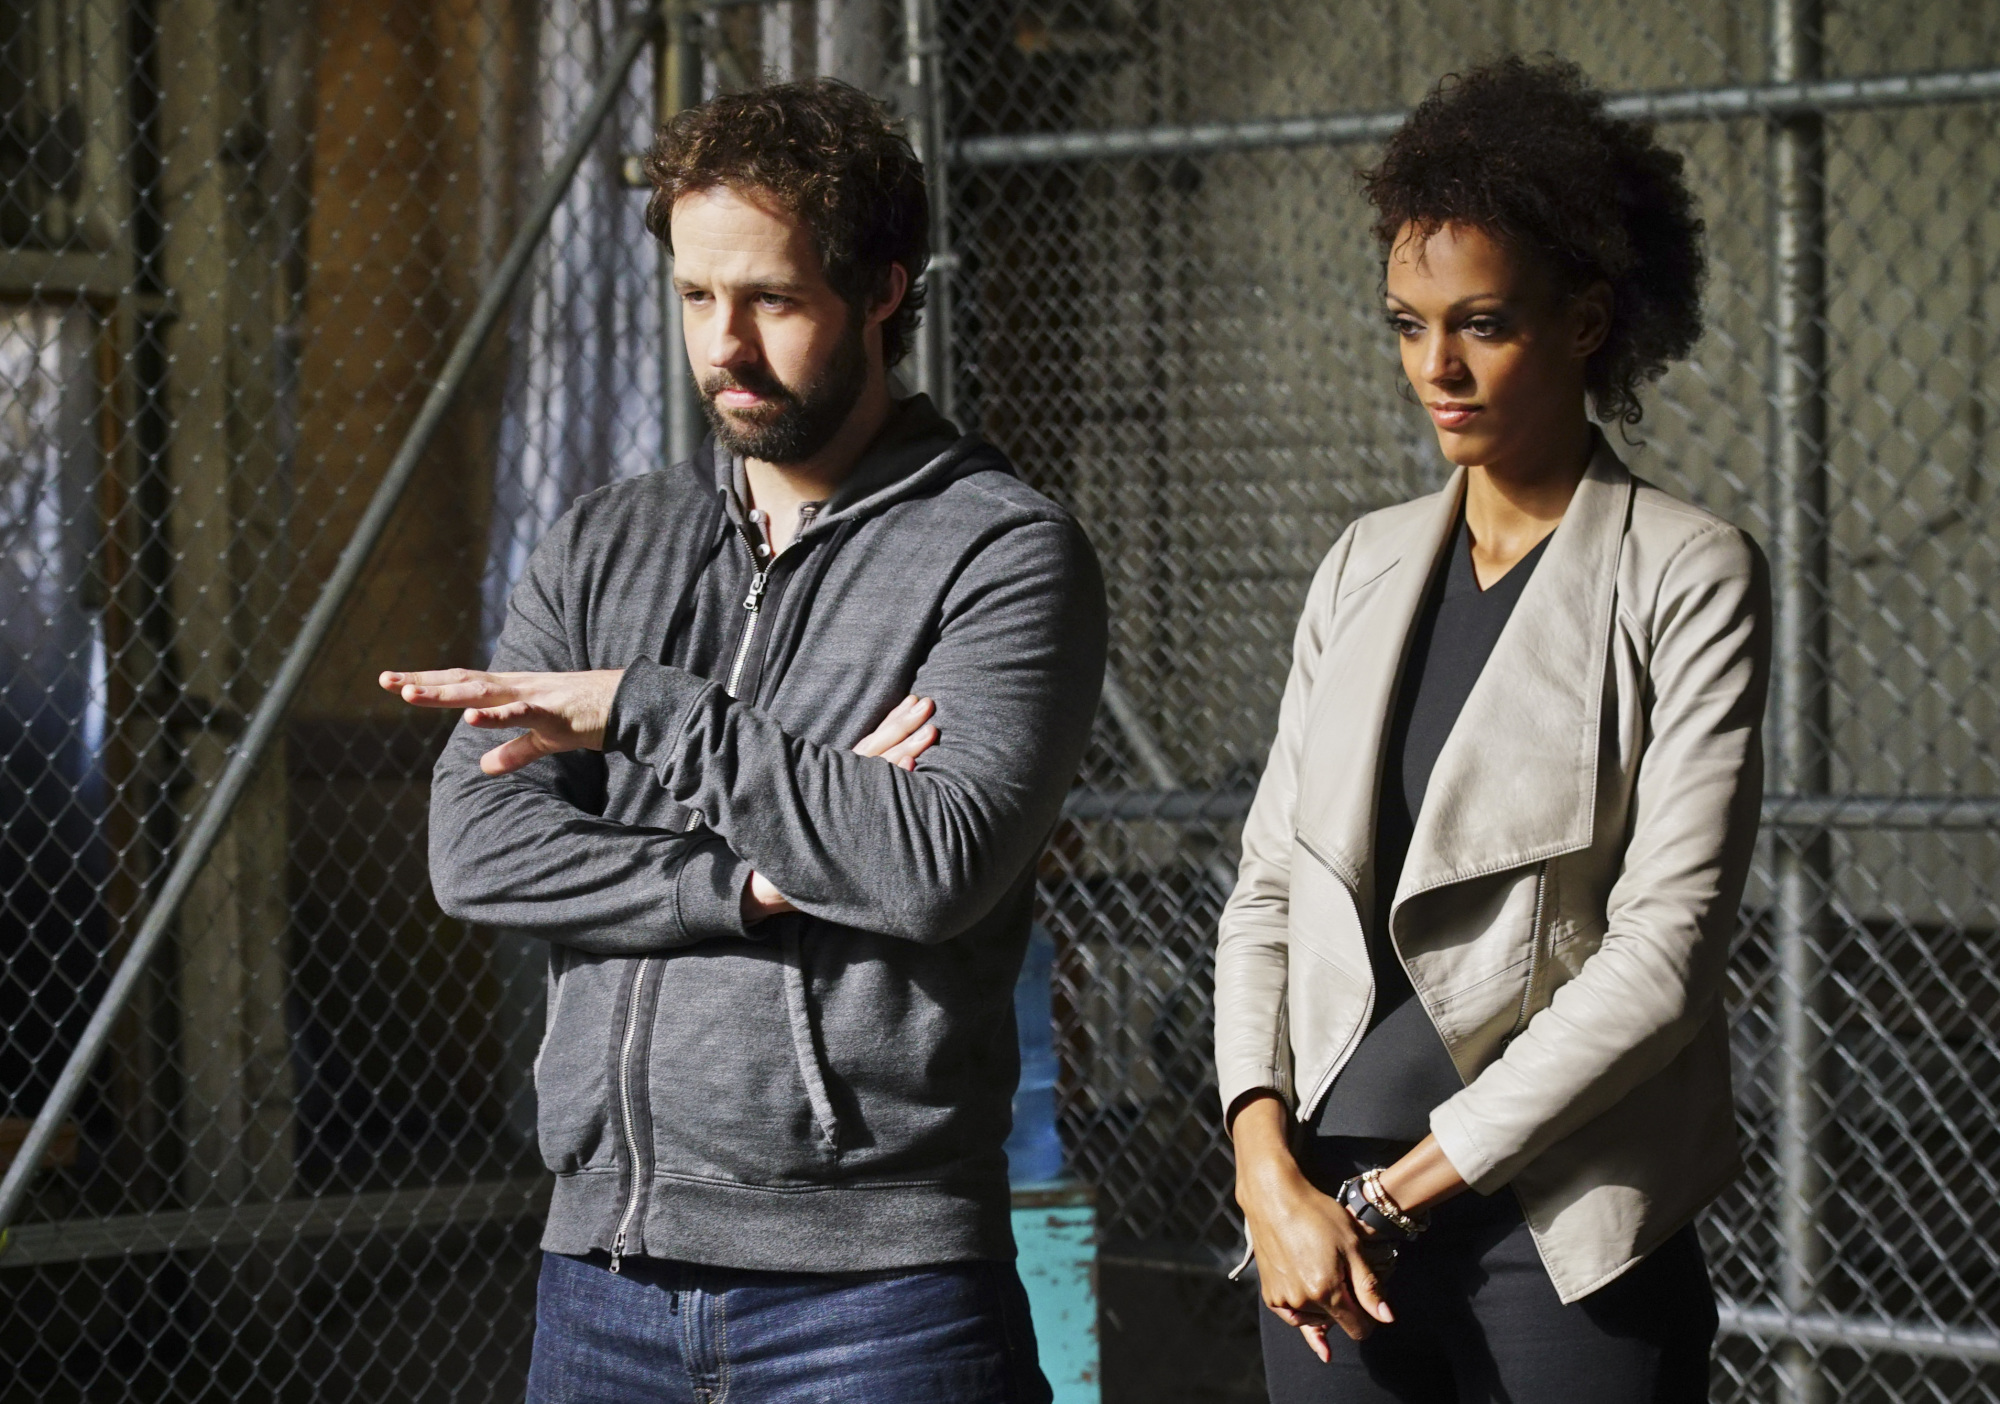 Peter Cambor as Operational Psychologist Nate Getz and Judith Shekoni as Alisa Chambers